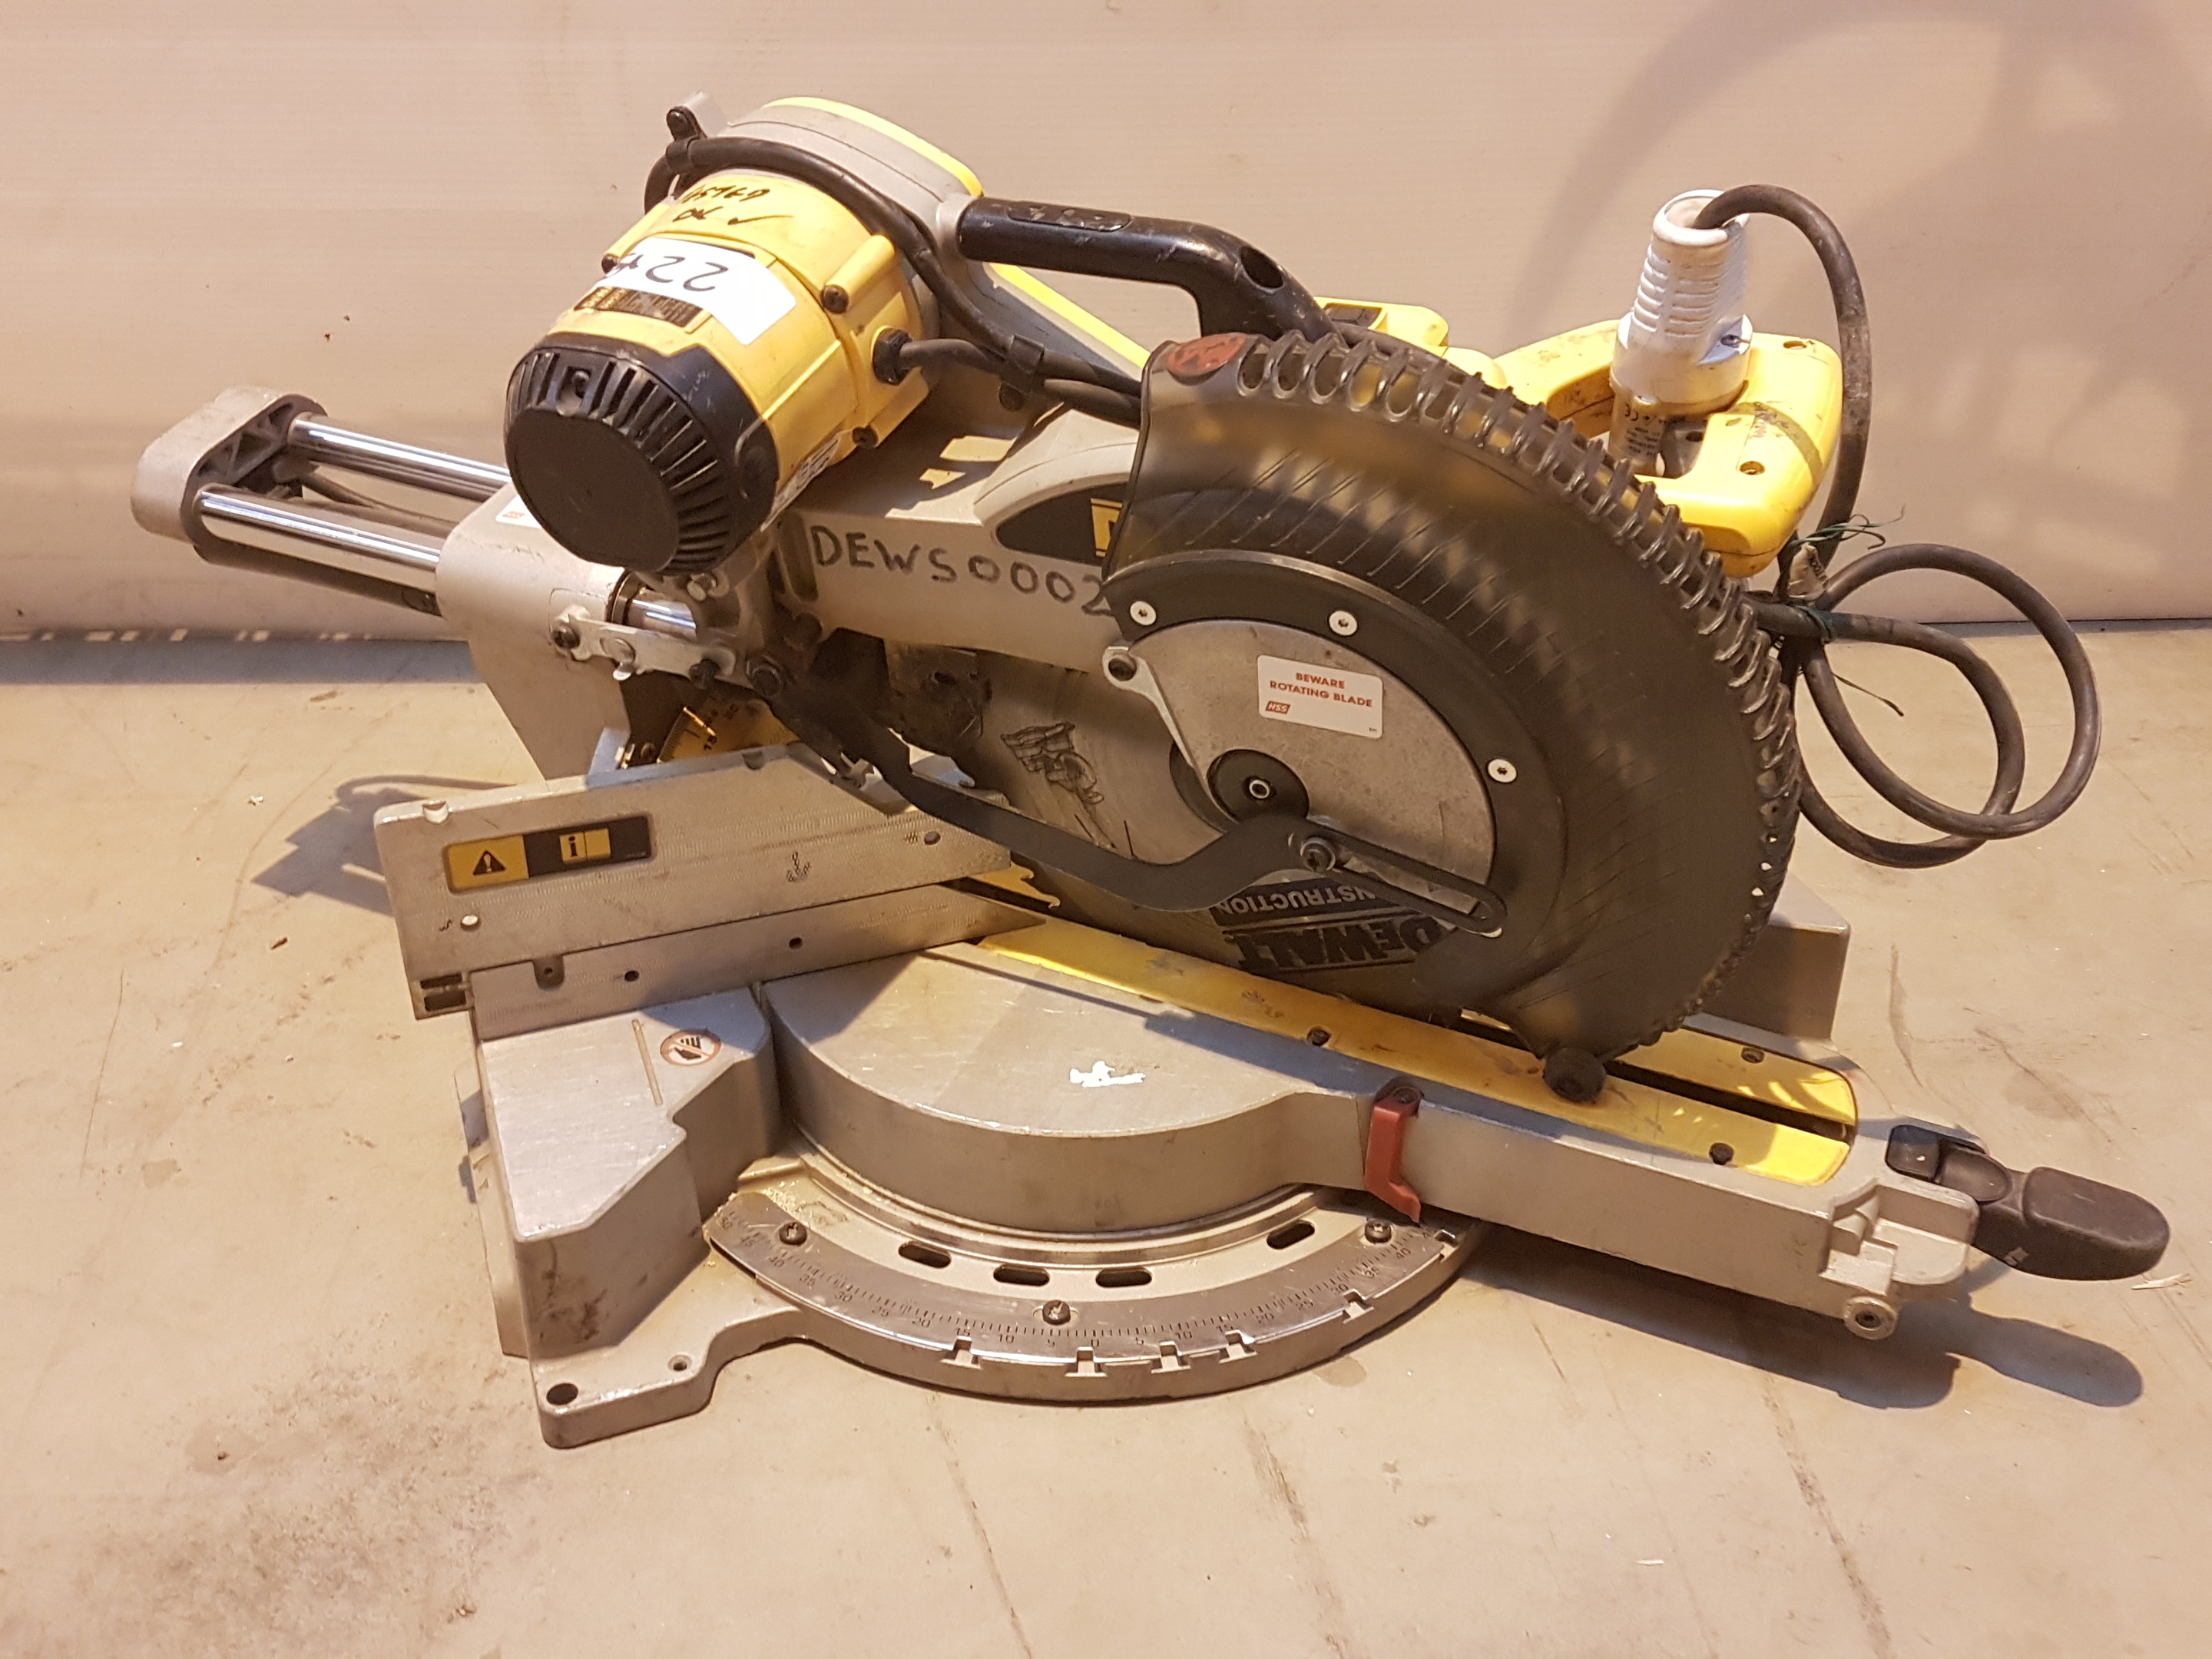 Lot 22 - DeWalt 110v DOUBLE BEVEL MITRE SAW DEWS0002, working